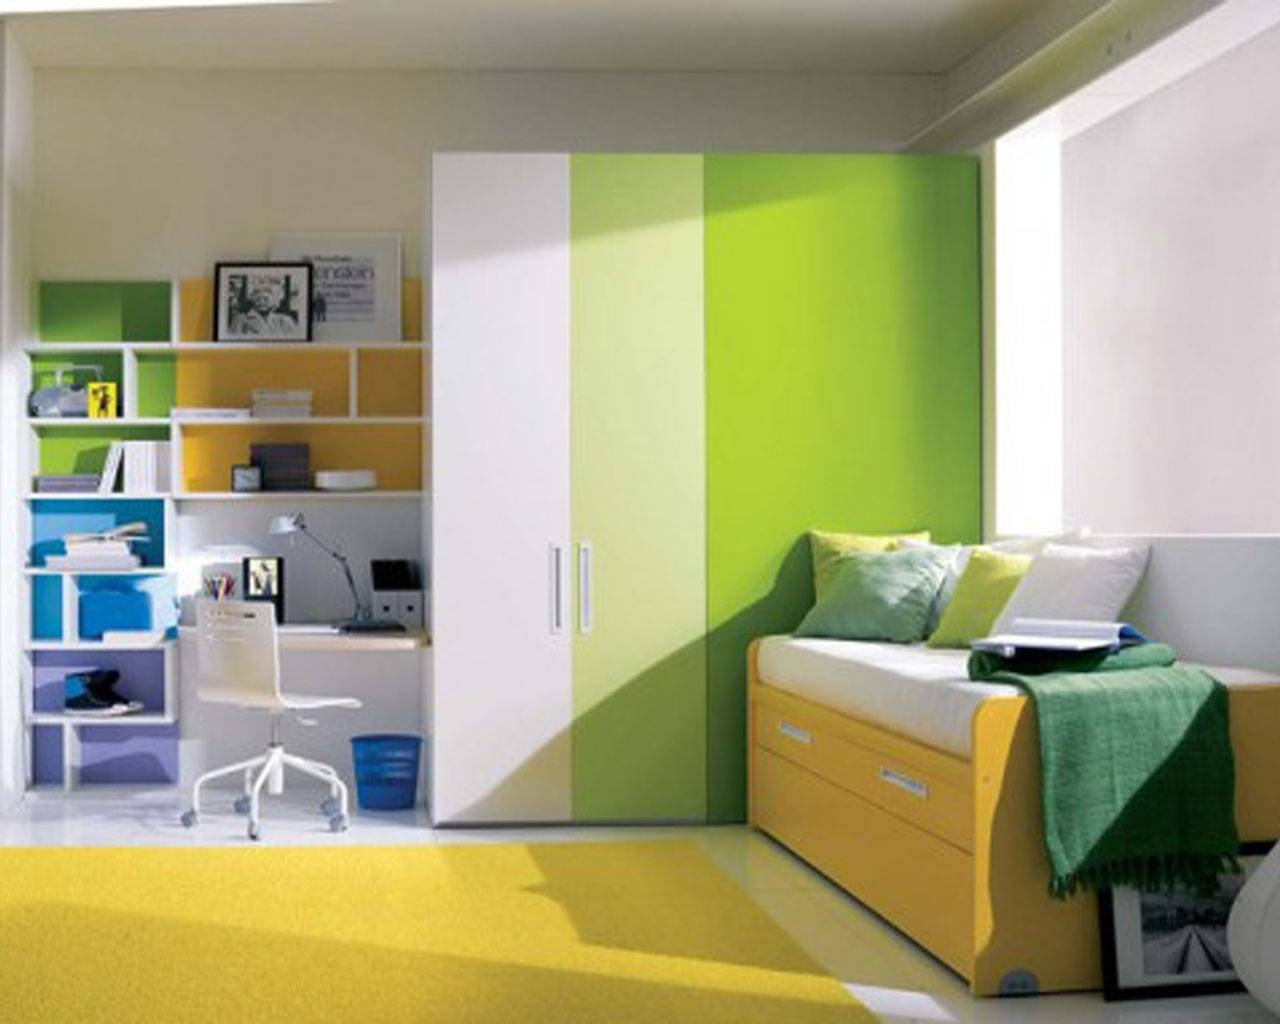 Wardrobe Designs For Children's Room | Nytexas with Childrens Bedroom Wardrobes (Image 26 of 30)